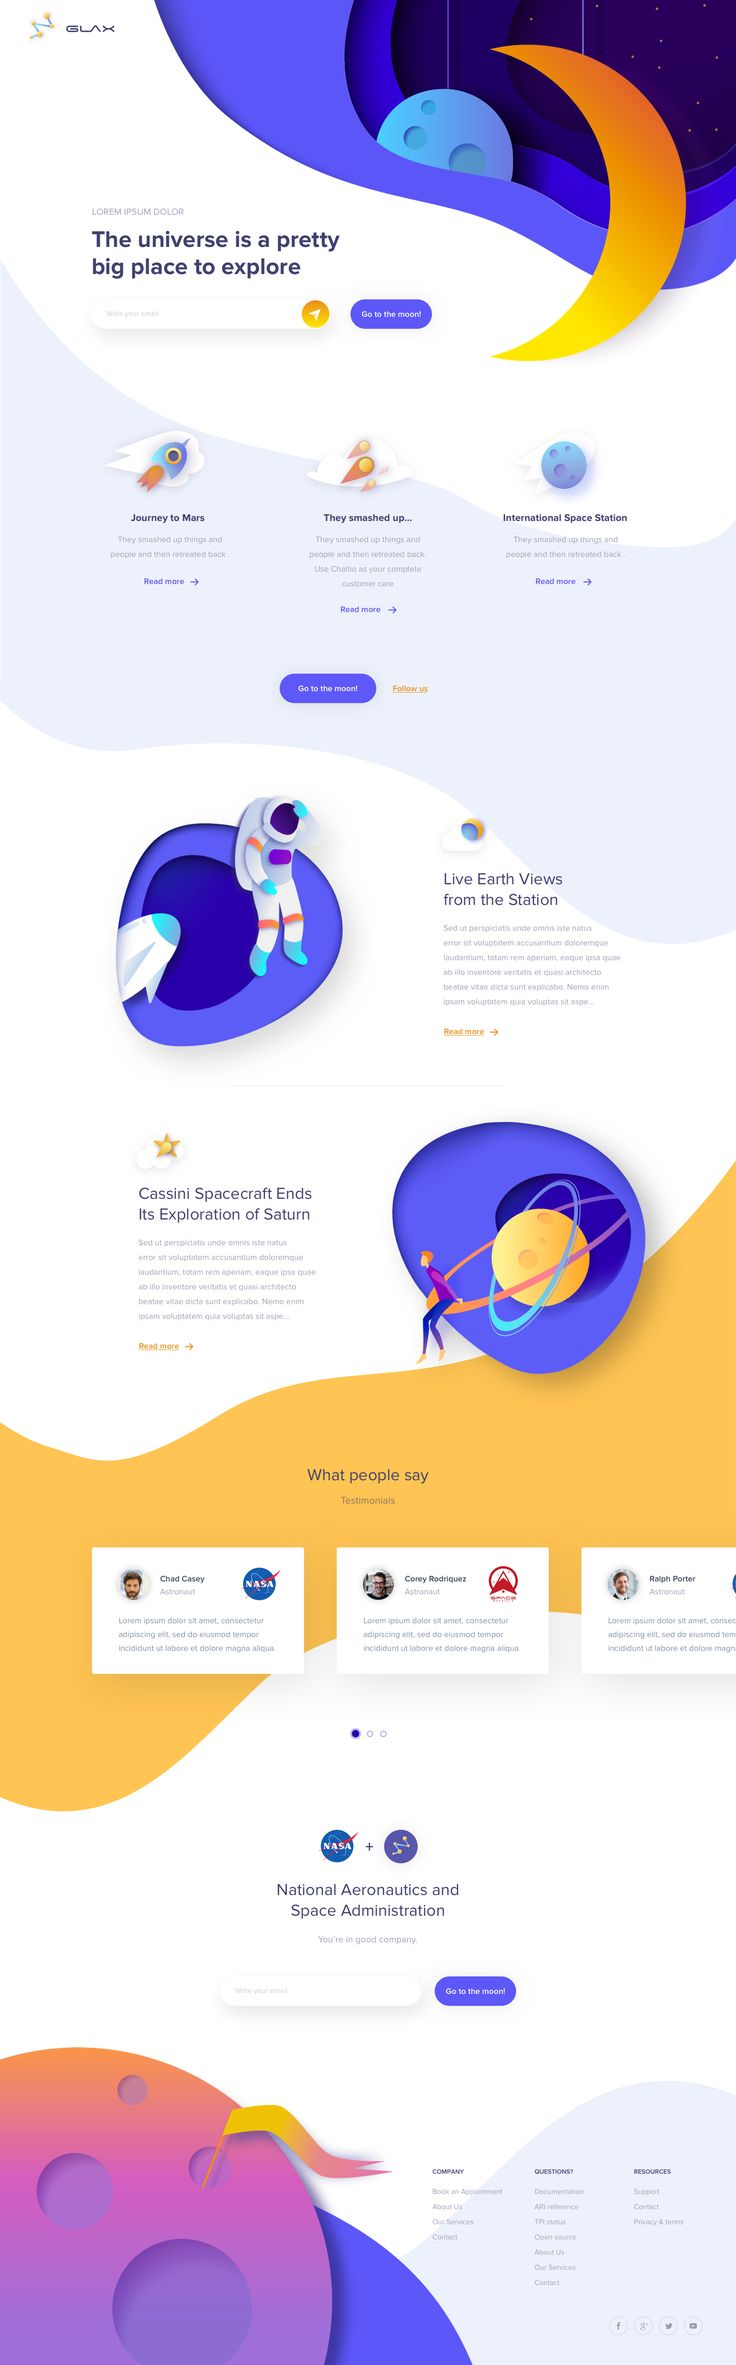 Glax - Landin Page exploration for kids. Ui concept and design by Outcrowd.